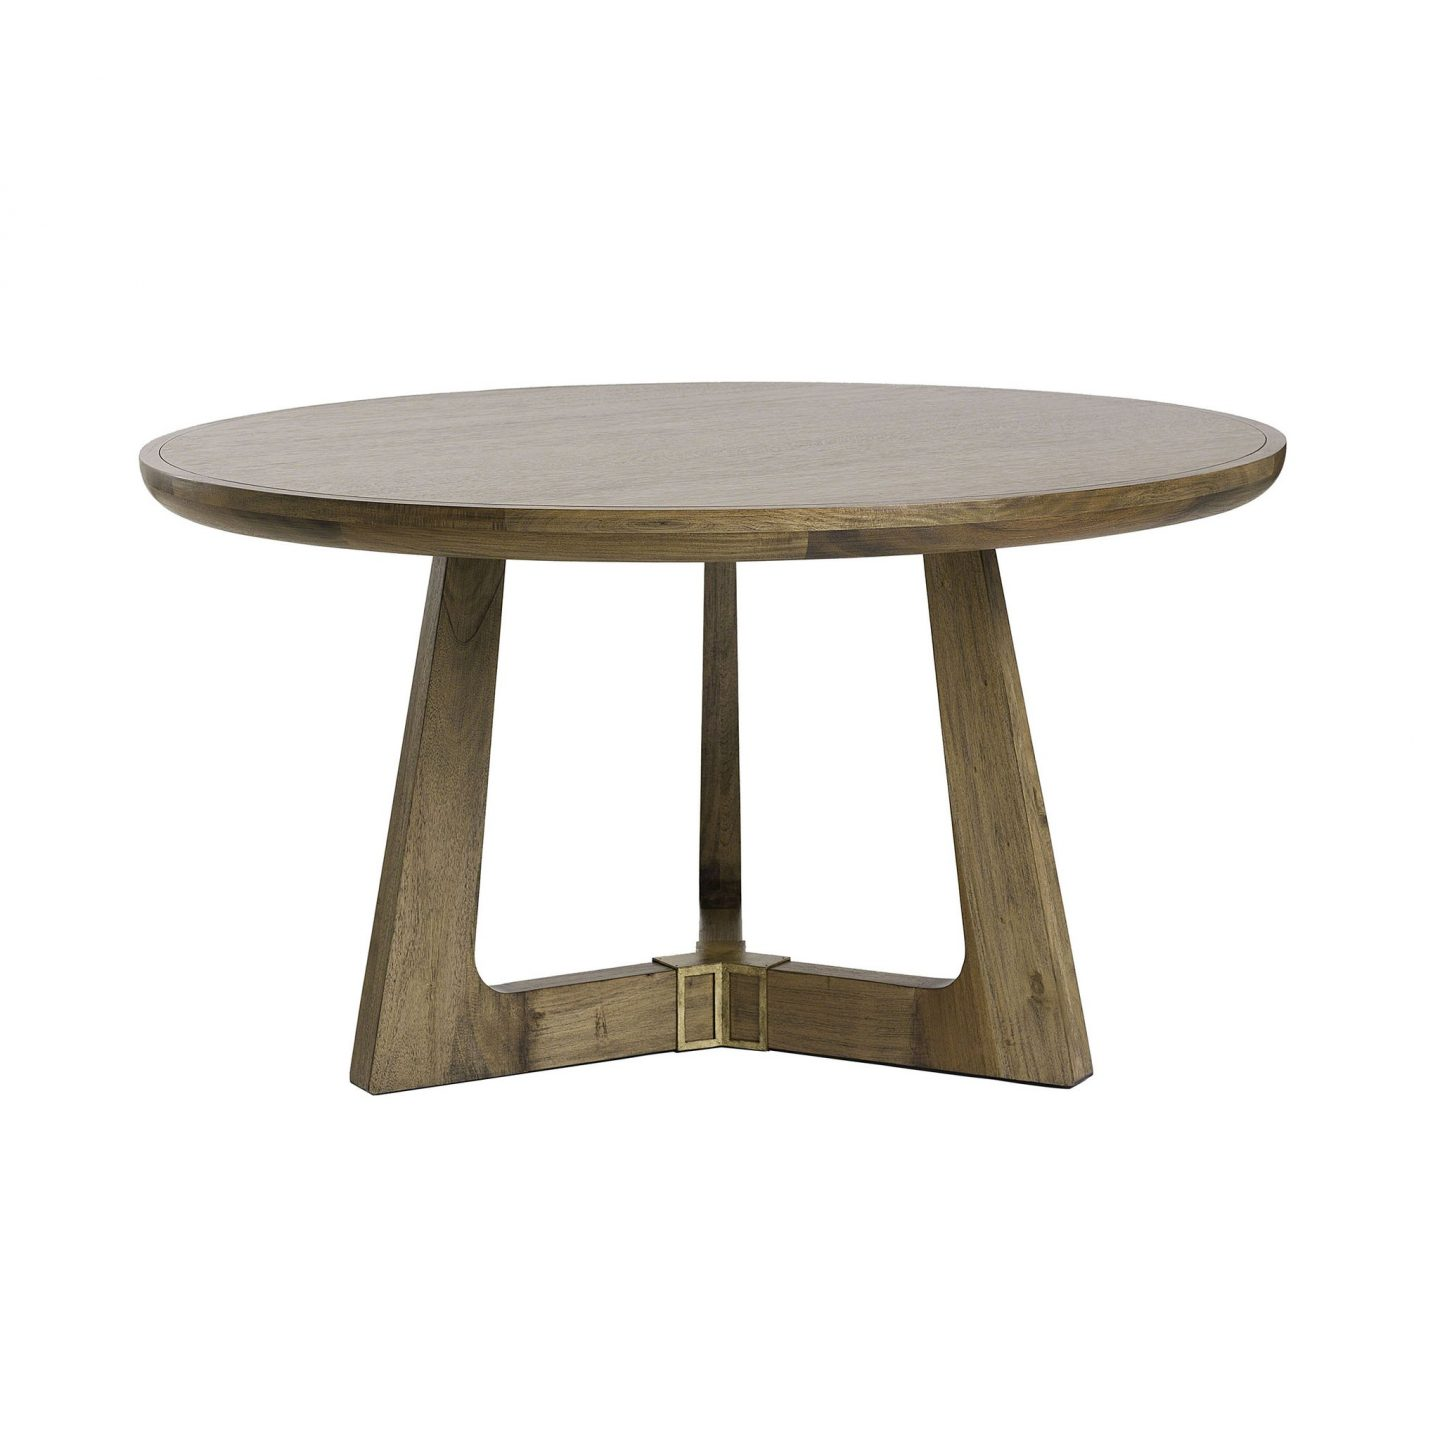 "Chronograph 56"" Silhouette Dining Table - Curate Home Collection"